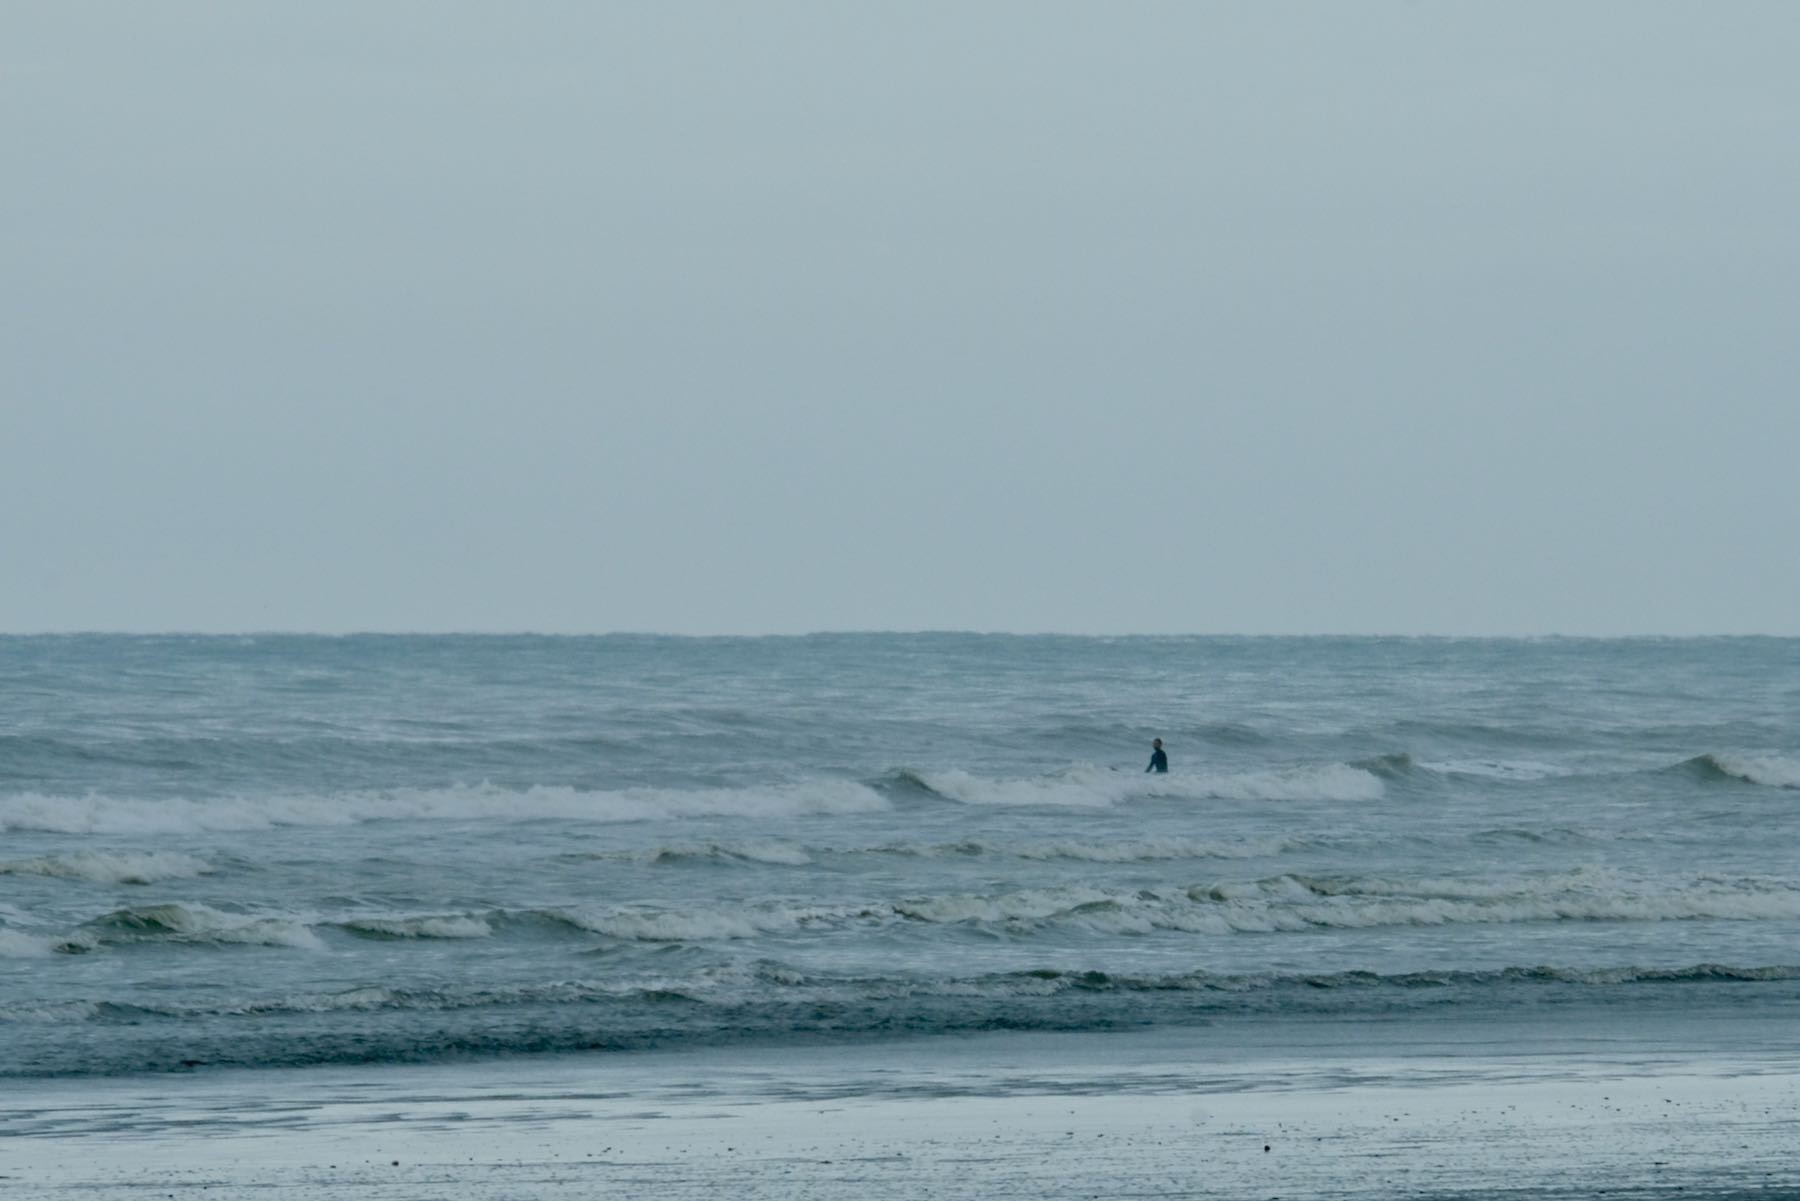 A person sitting on a surboard in the sea.